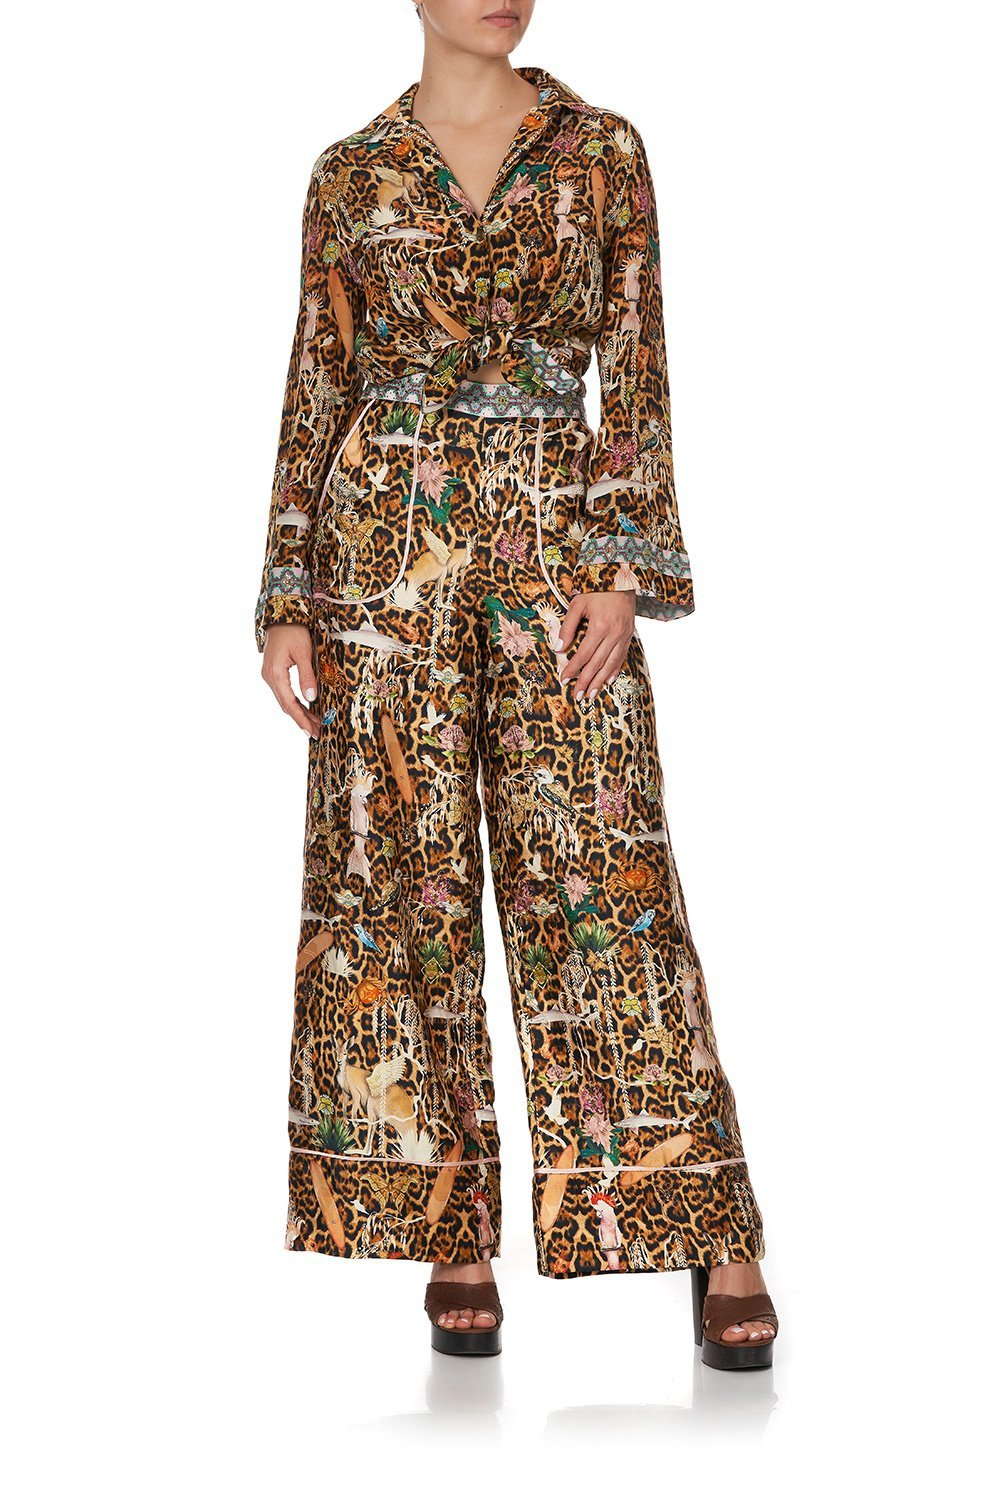 LOUNGE TROUSER WITH CUFFS FAUNA ELECTRO